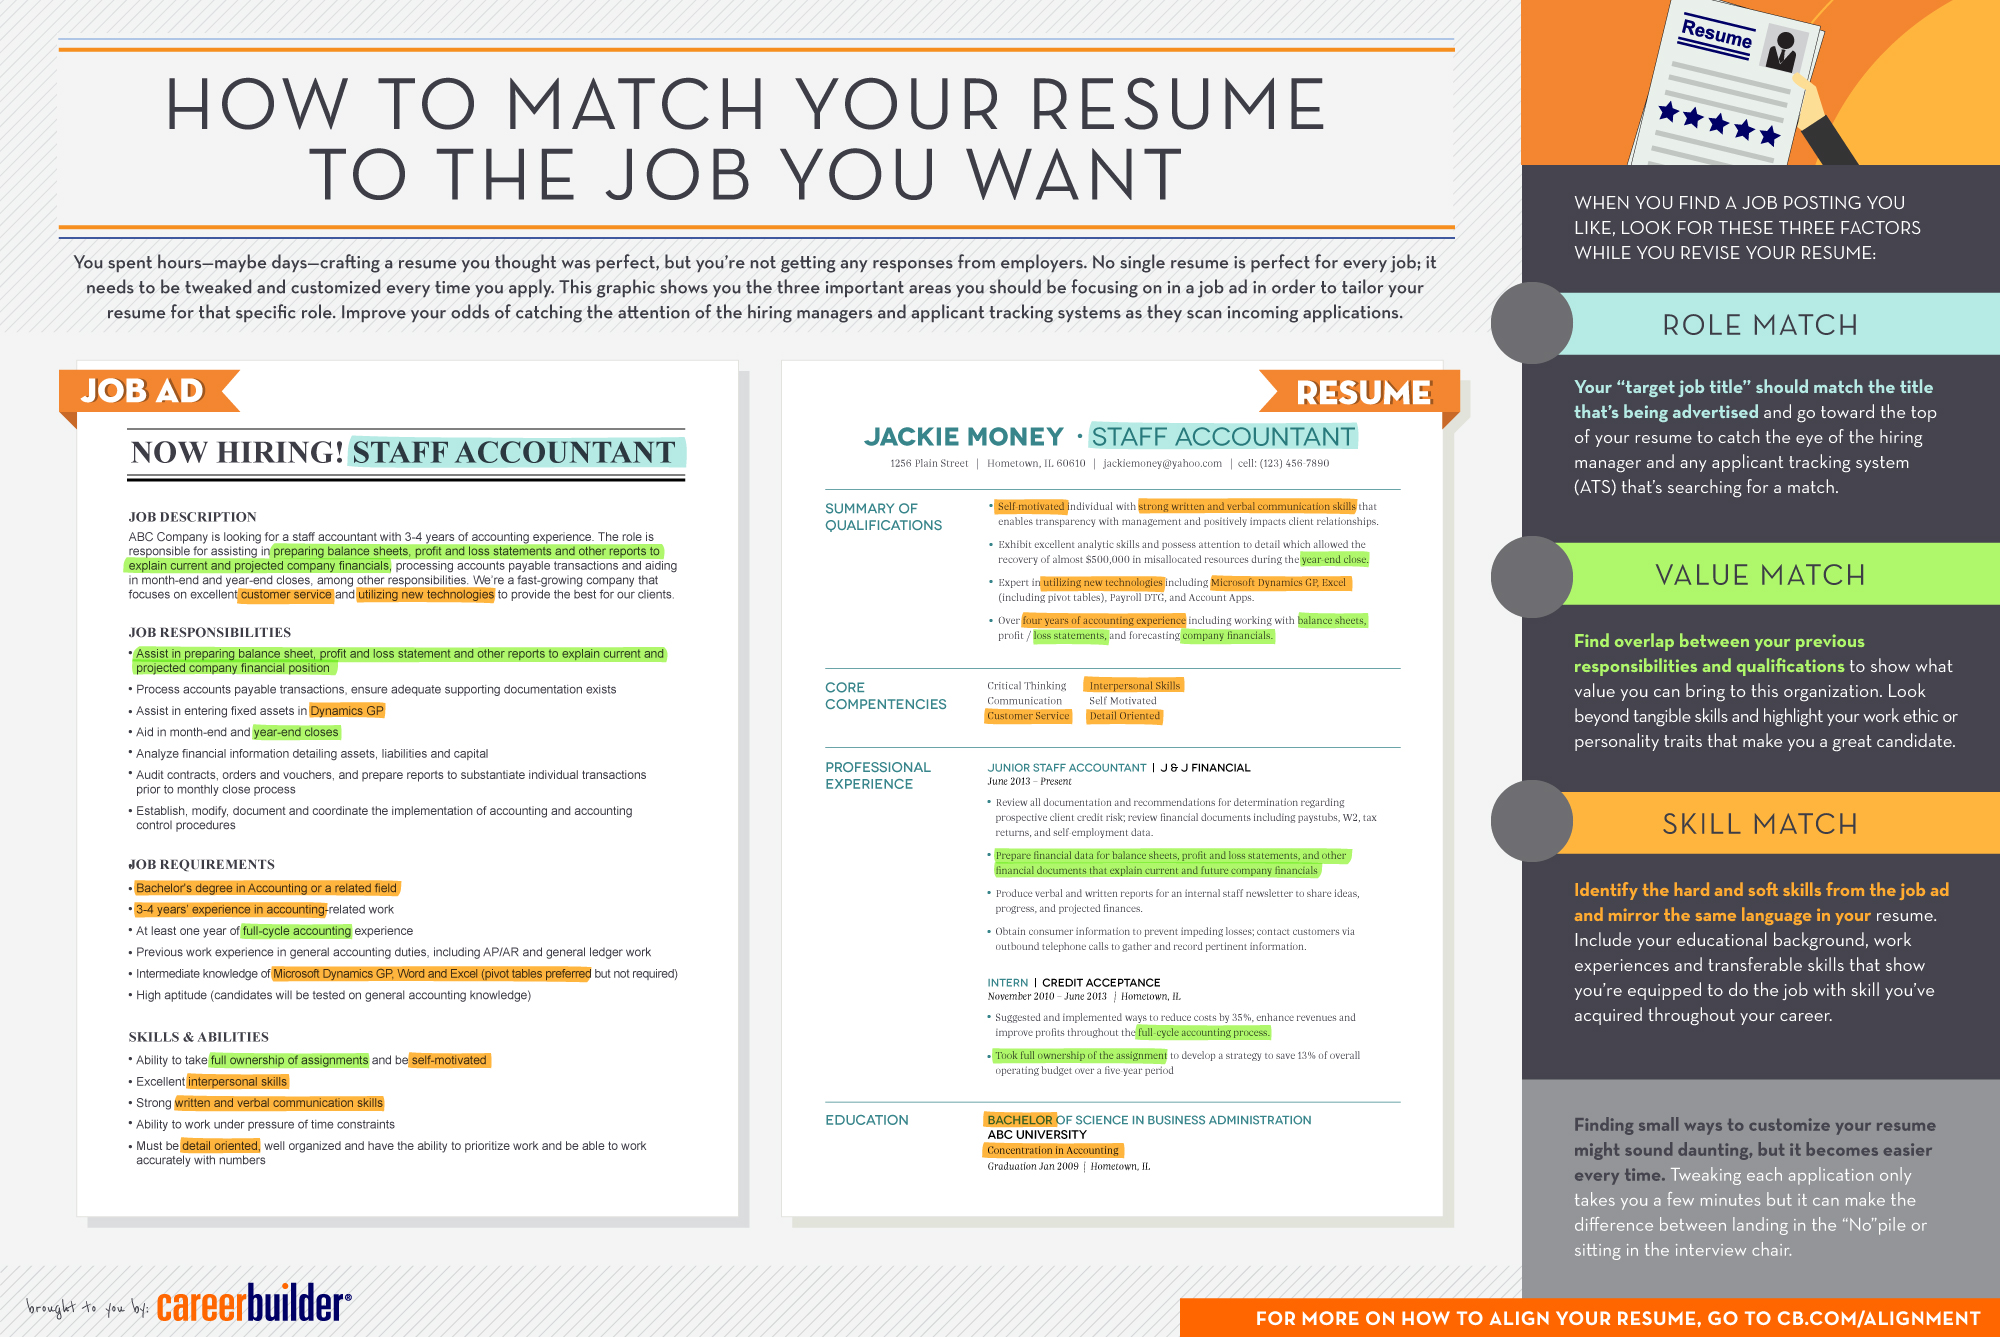 Resume Advice Magnificent INFOGRAPHIC Matching Your Resume To The Job You Want CareerBuilder